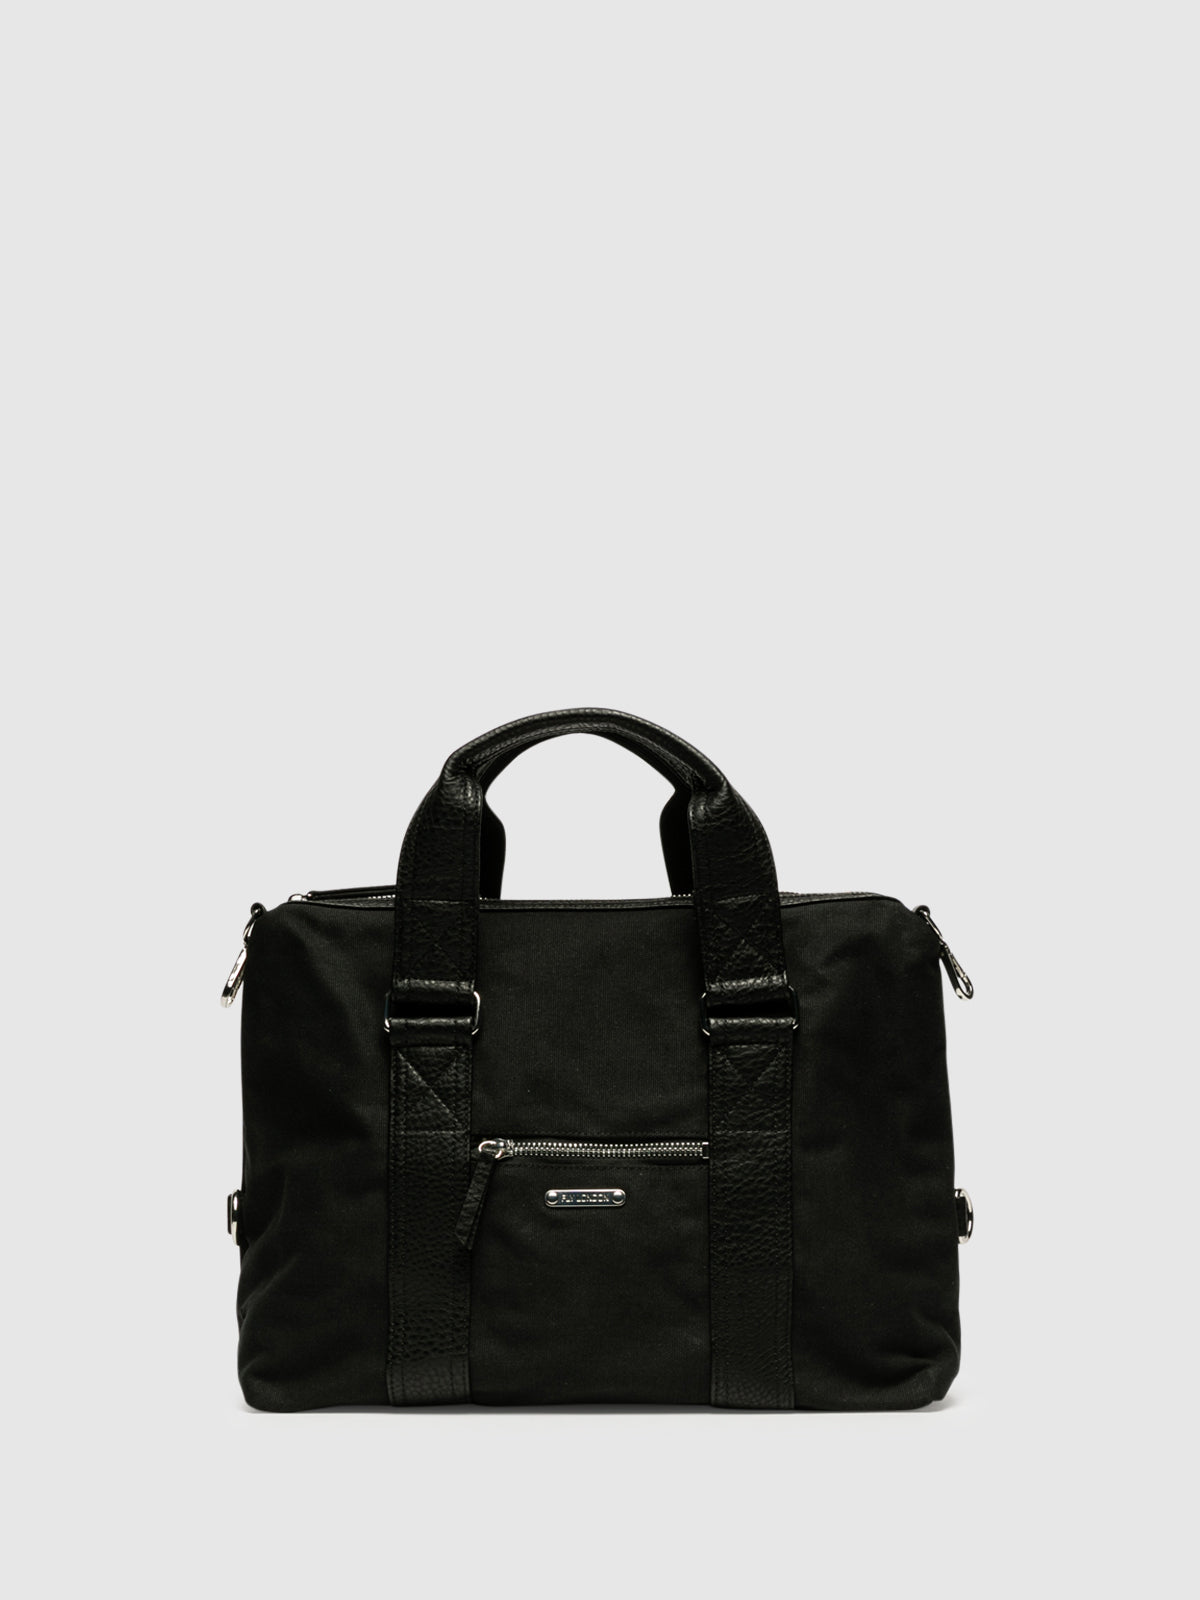 Fly London Bolso Tote en color Negro